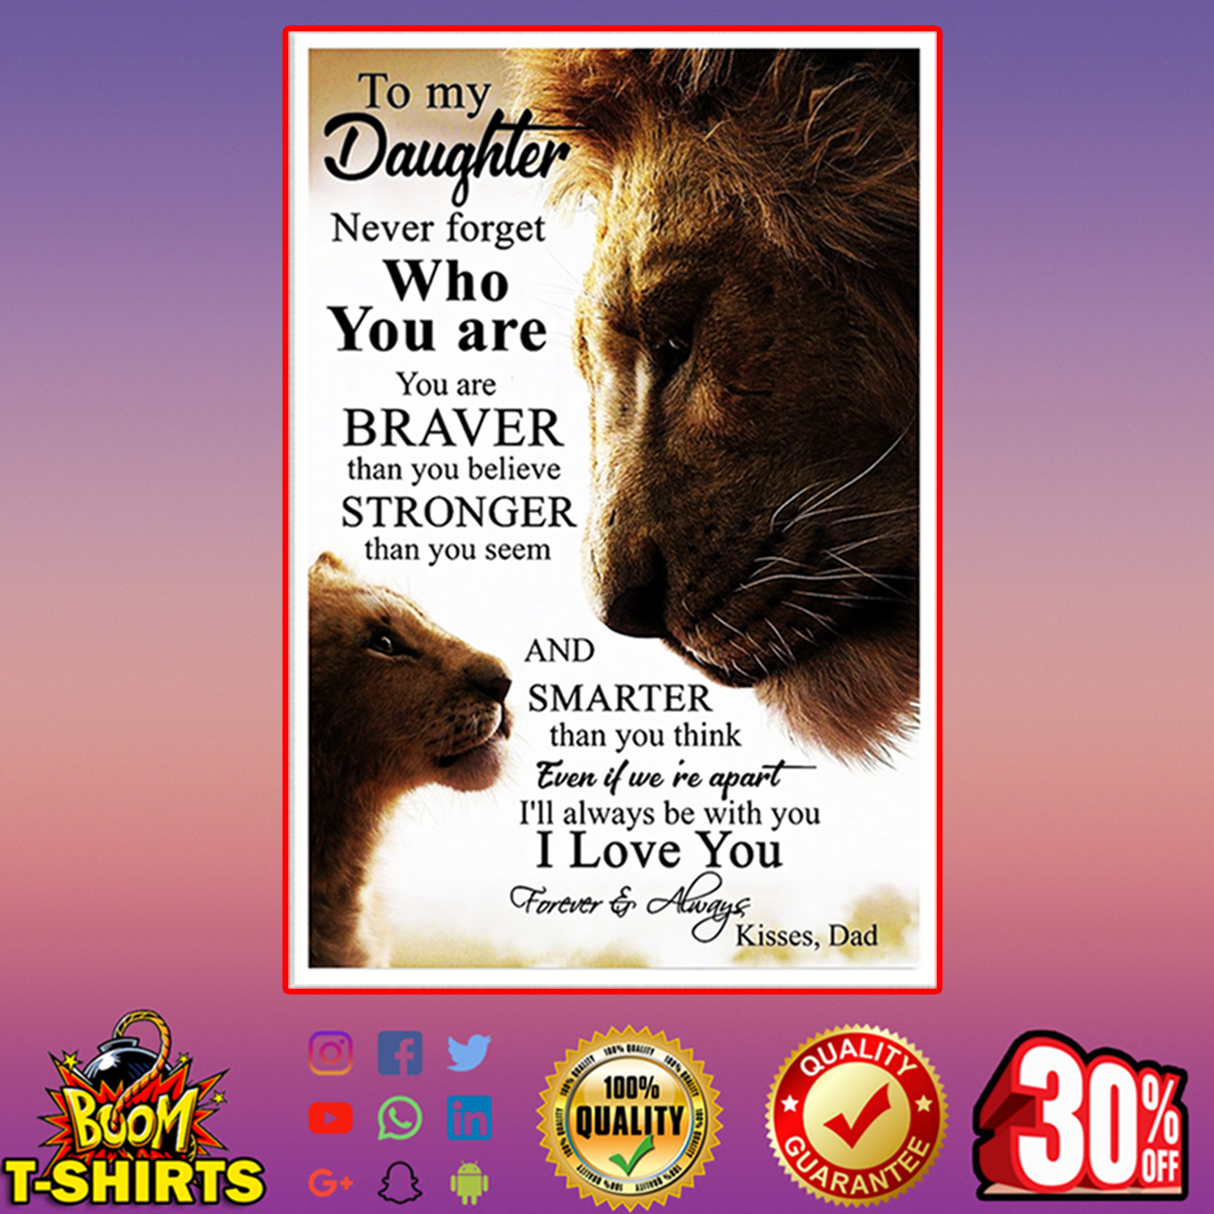 Lion King to my daughter never forget who you are poster